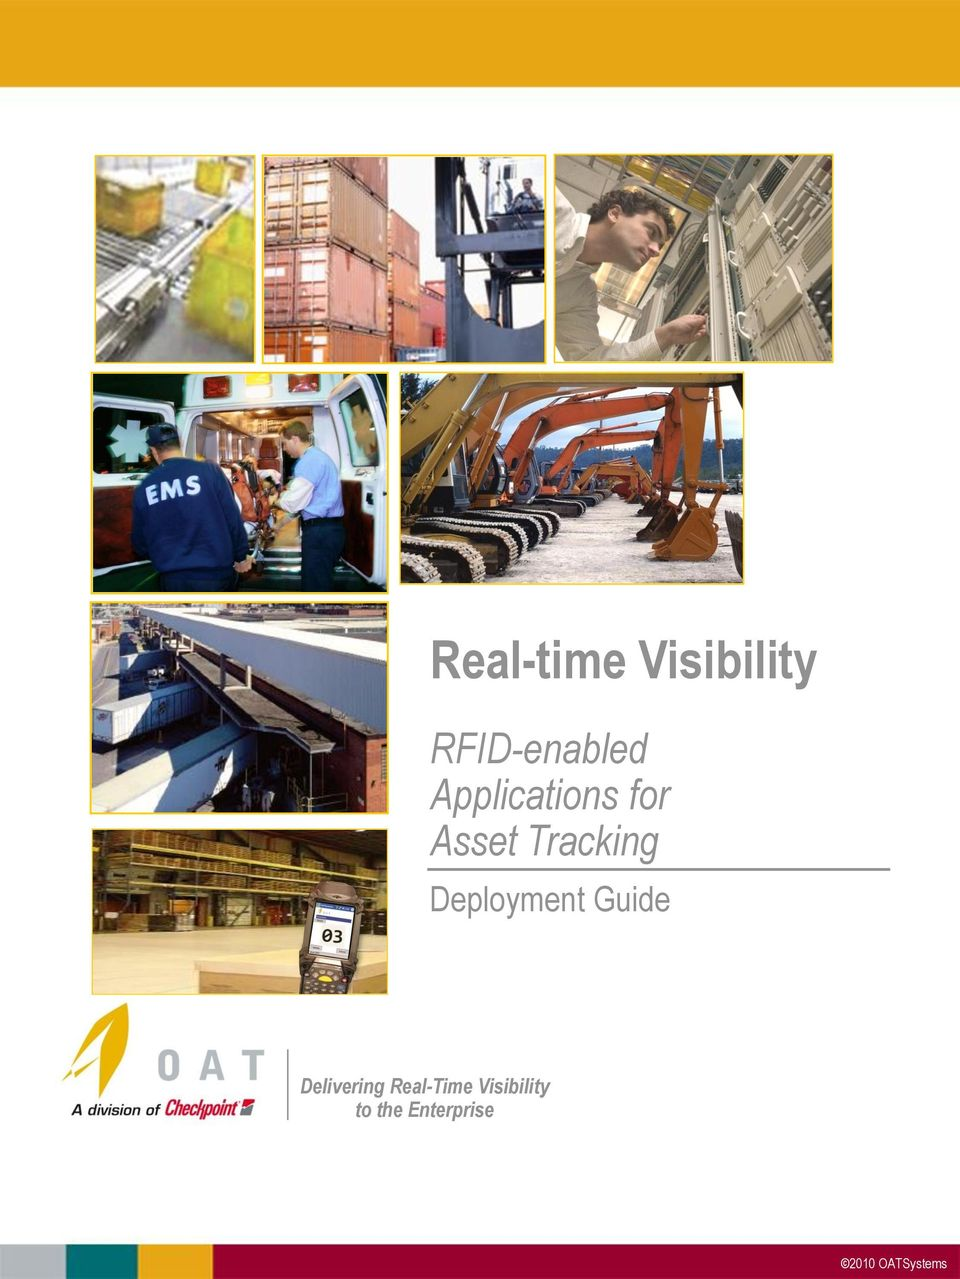 Guide Delivering Real-Time